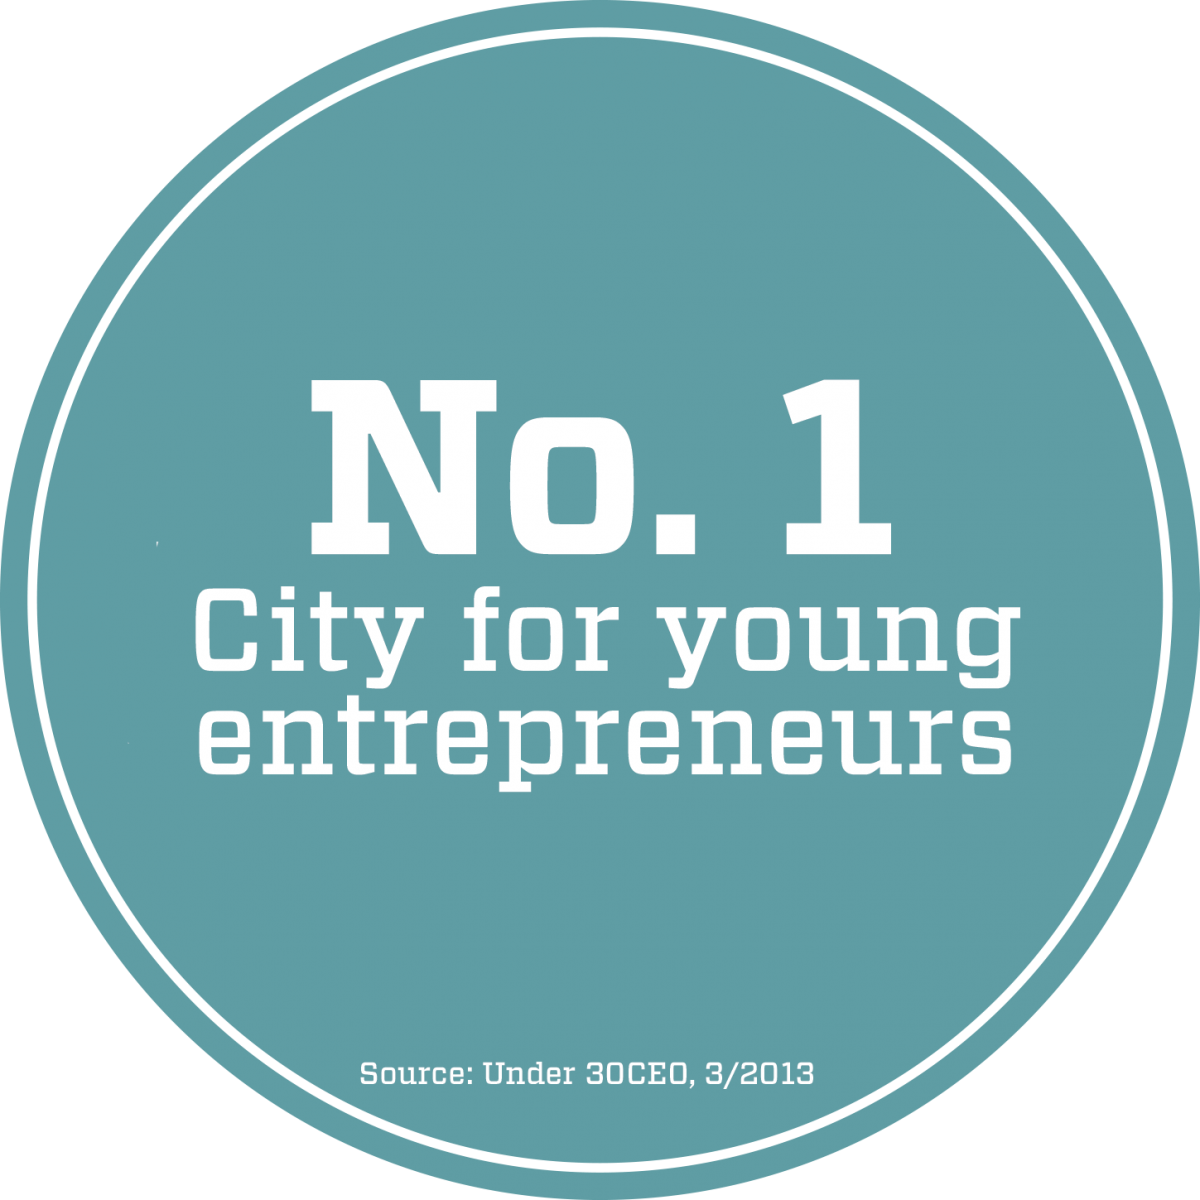 #1 city for young entrepreneurs